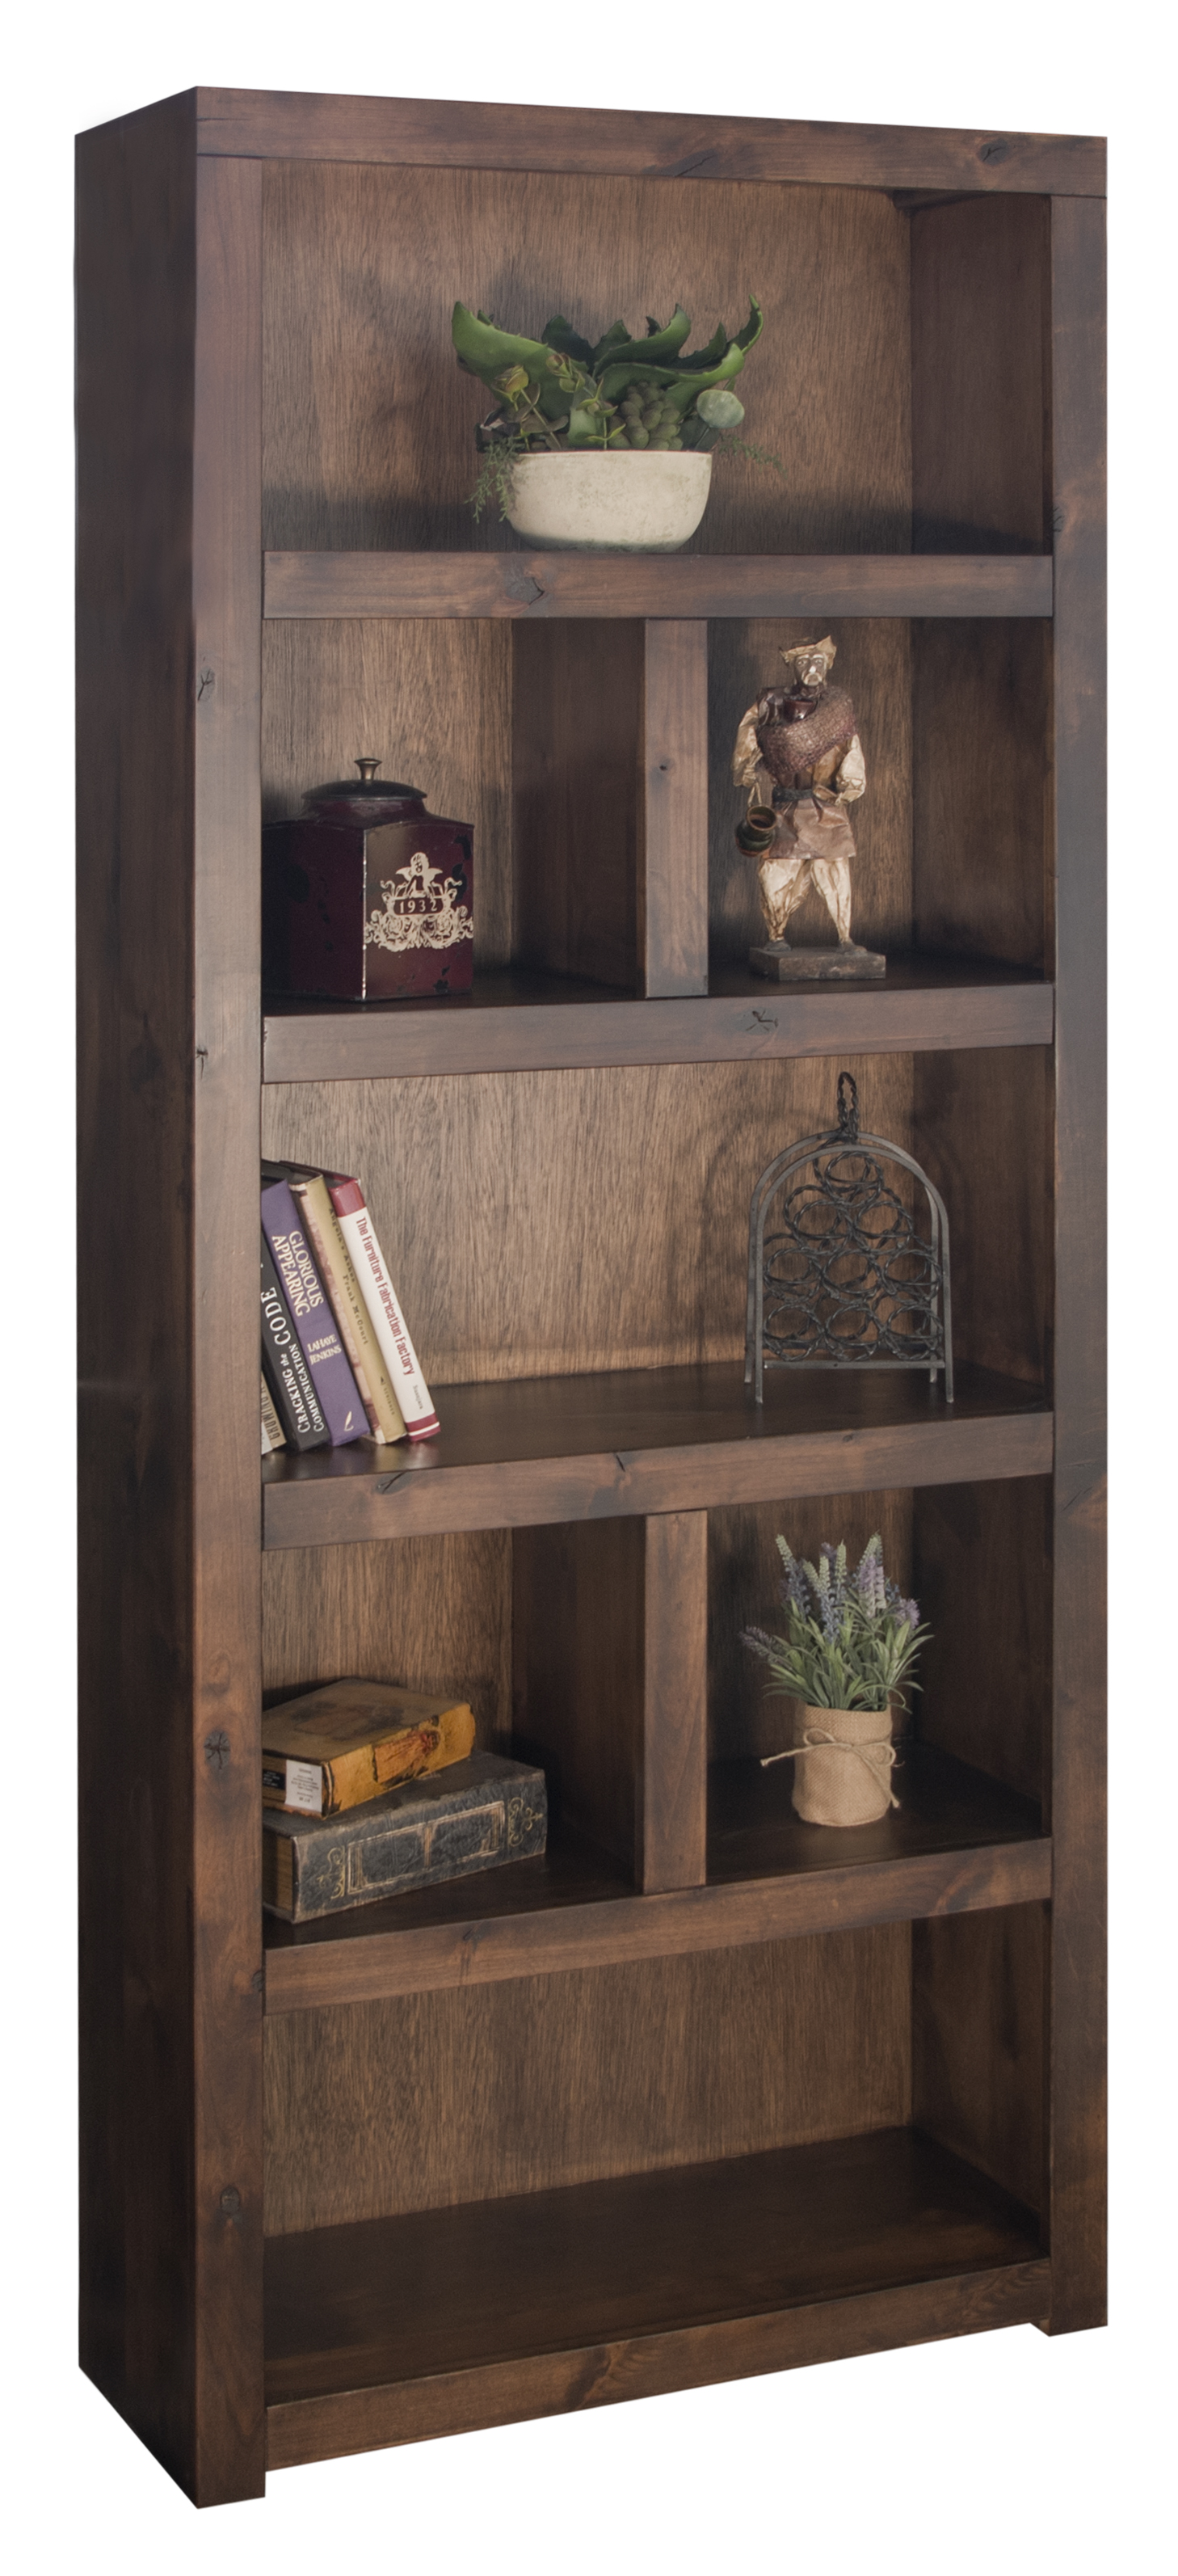 "Vendor 1356 Sausalito Collection 80"" Grand Bookcase - Item Number: SL6930-WKY"